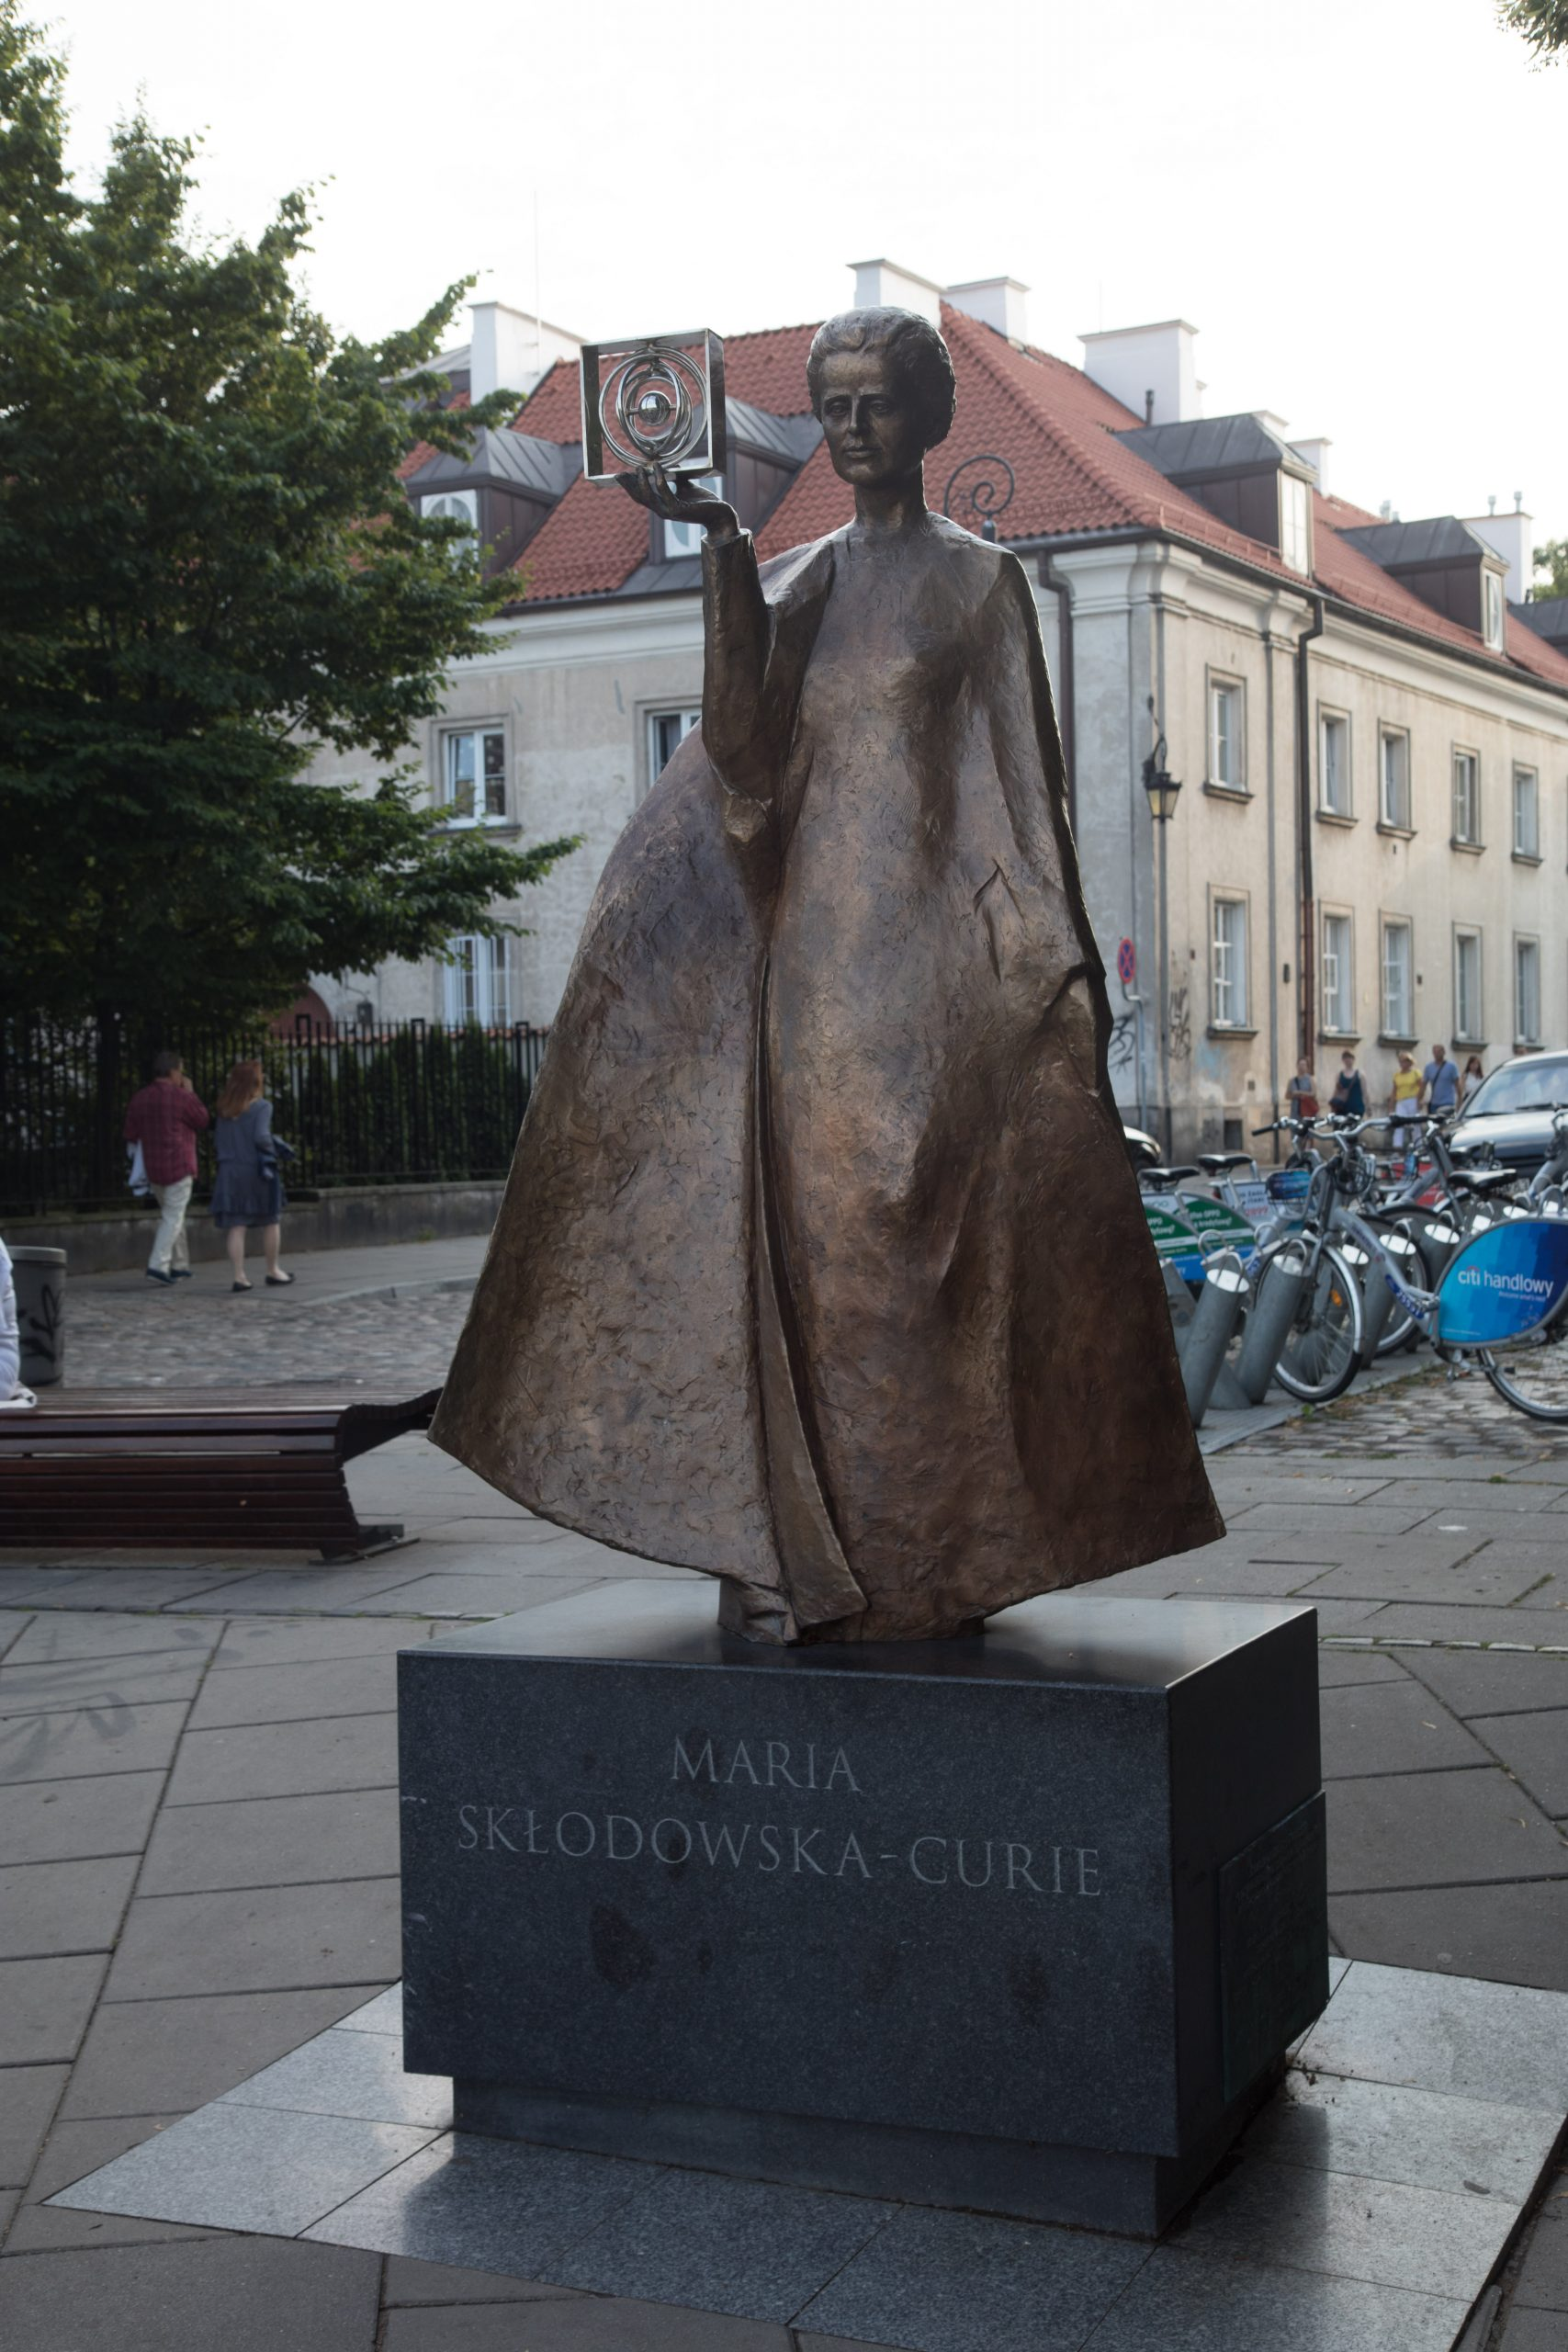 Marie Curie, I though she was French, but no, she was born in Warsaw.